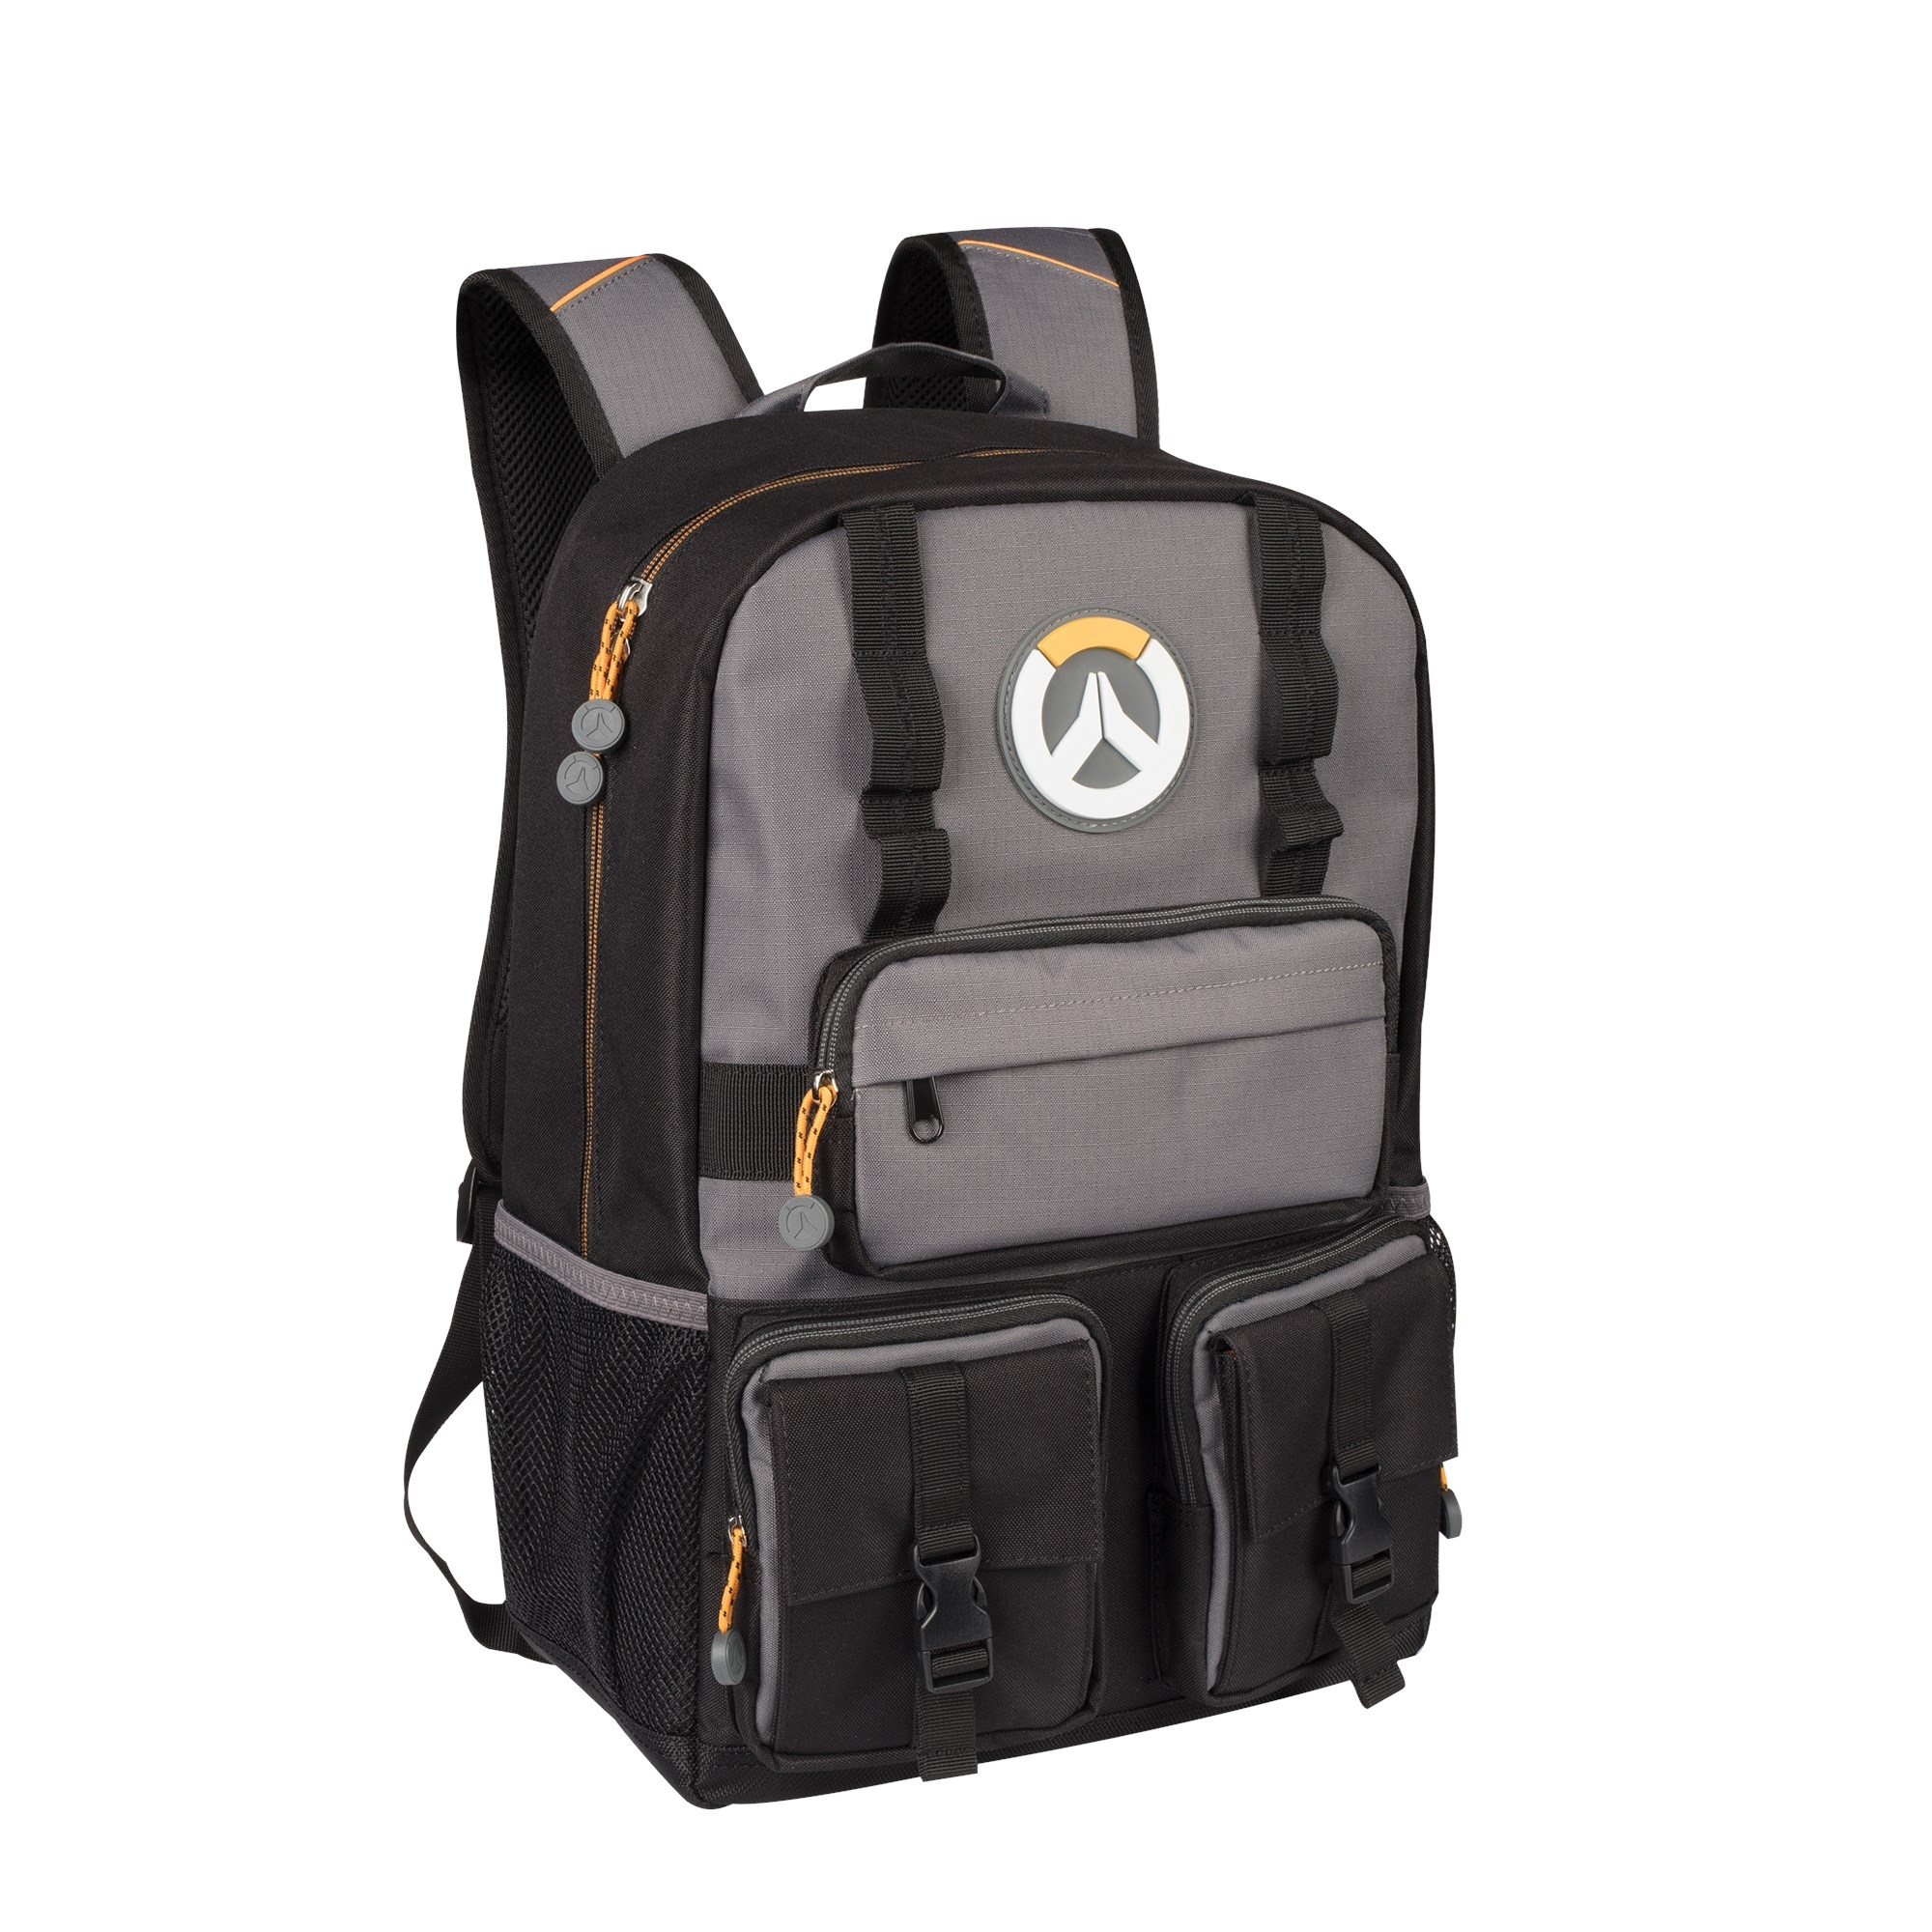 Photograph: Overwatch MVP Laptop Backpack